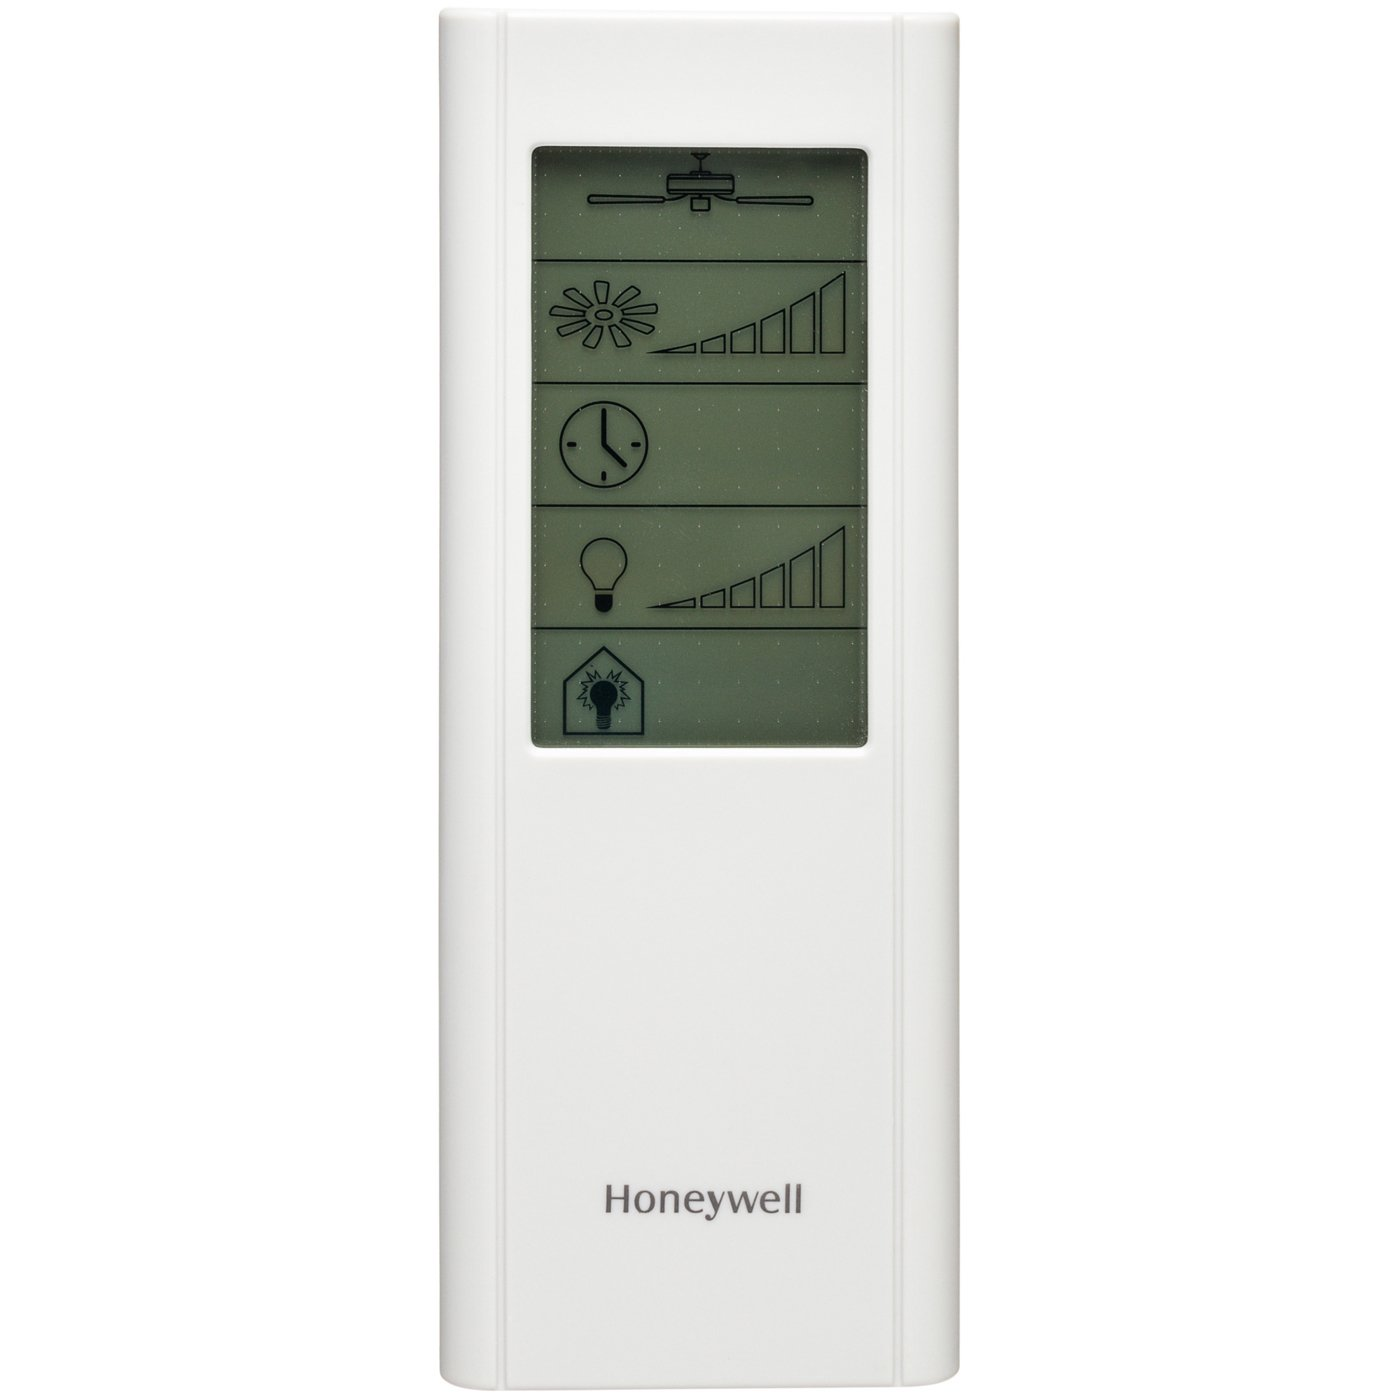 Honeywell Ceiling Fans 40013-01 LCD Touch Screen Universal Remote Control for Ceiling Fans Cream by Honeywell Ceiling Fans (Image #2)